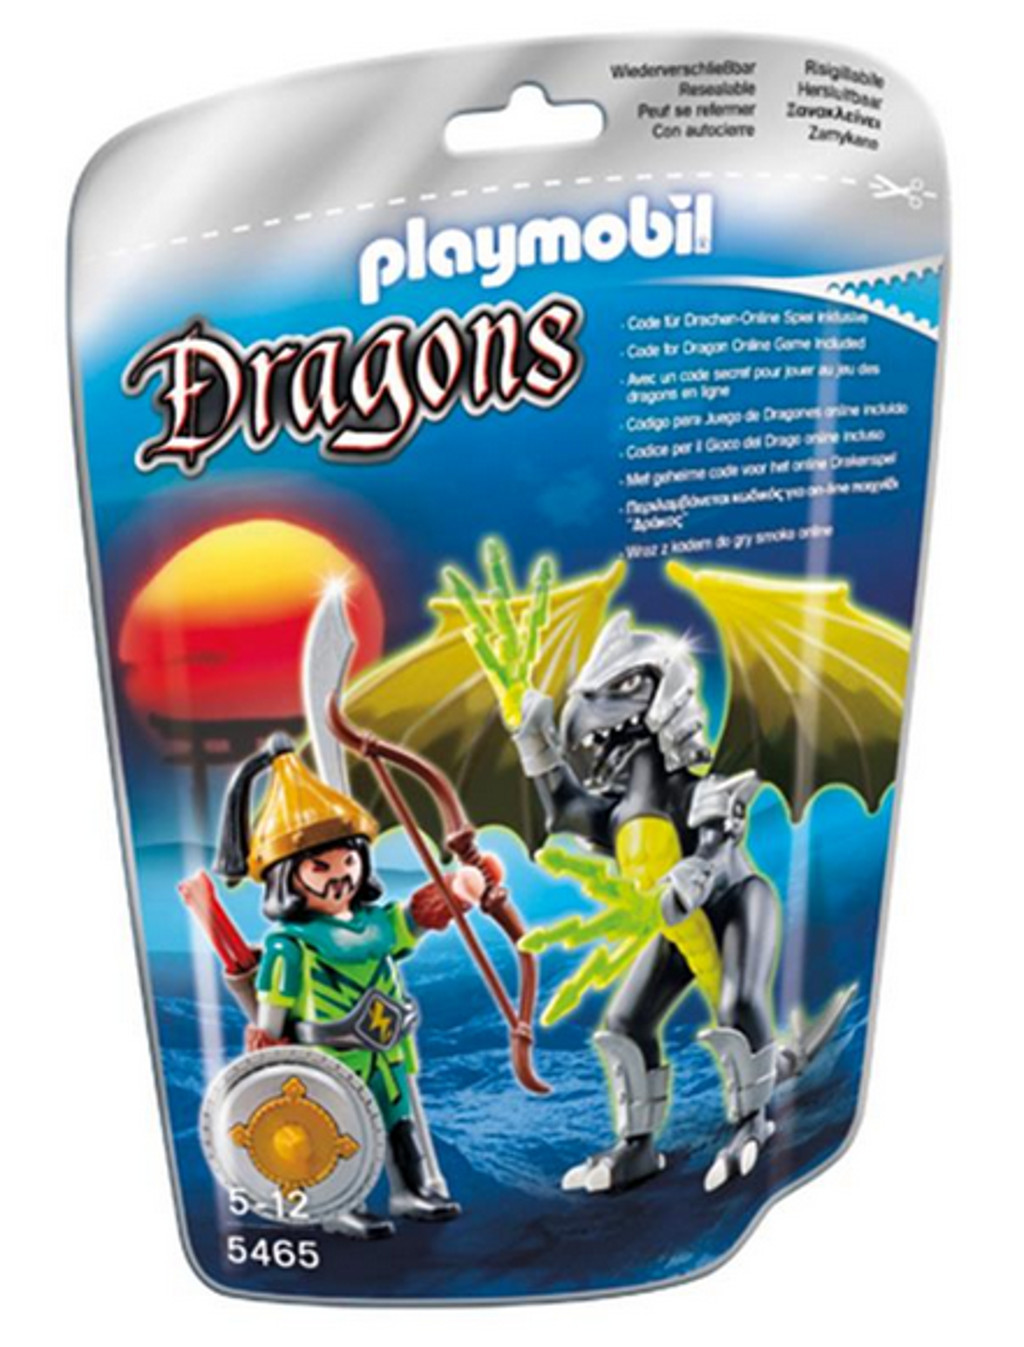 Dragonball Z Bettwäsche Playmobil 5465 Storm Dragon Mit Kämpfer